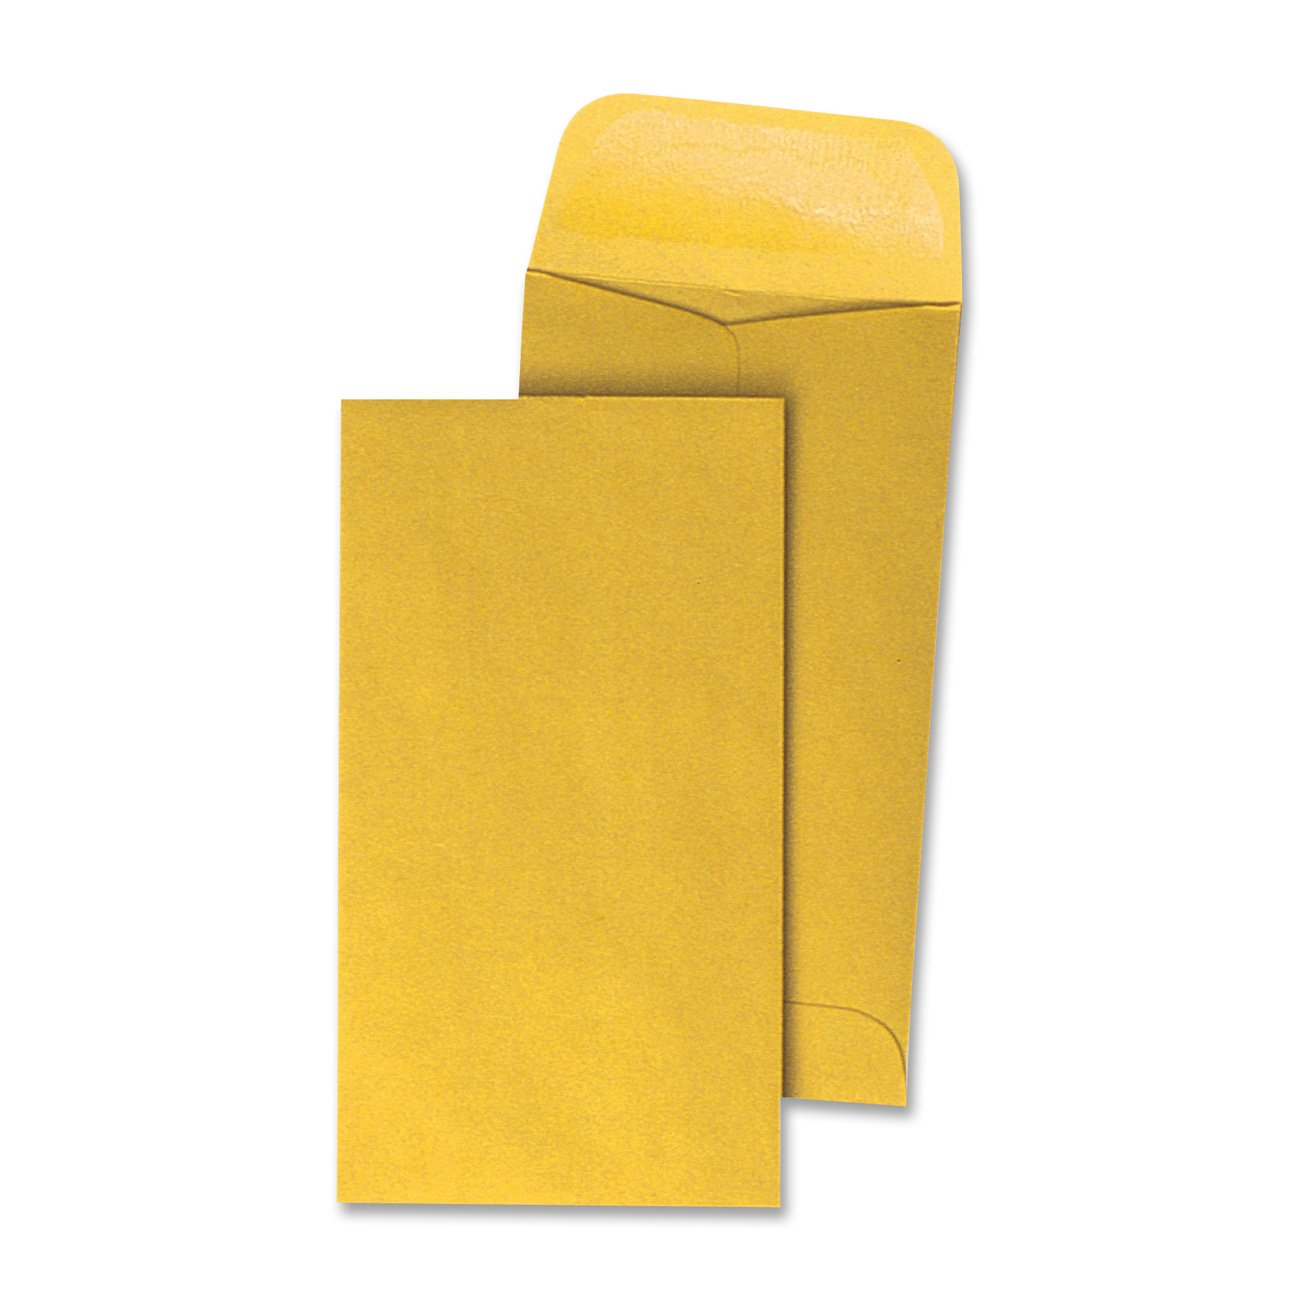 Quality Park Coin Envelopes, 7, 3.5 x 6.5 Inches, Kraft, Box of 250 (50763)